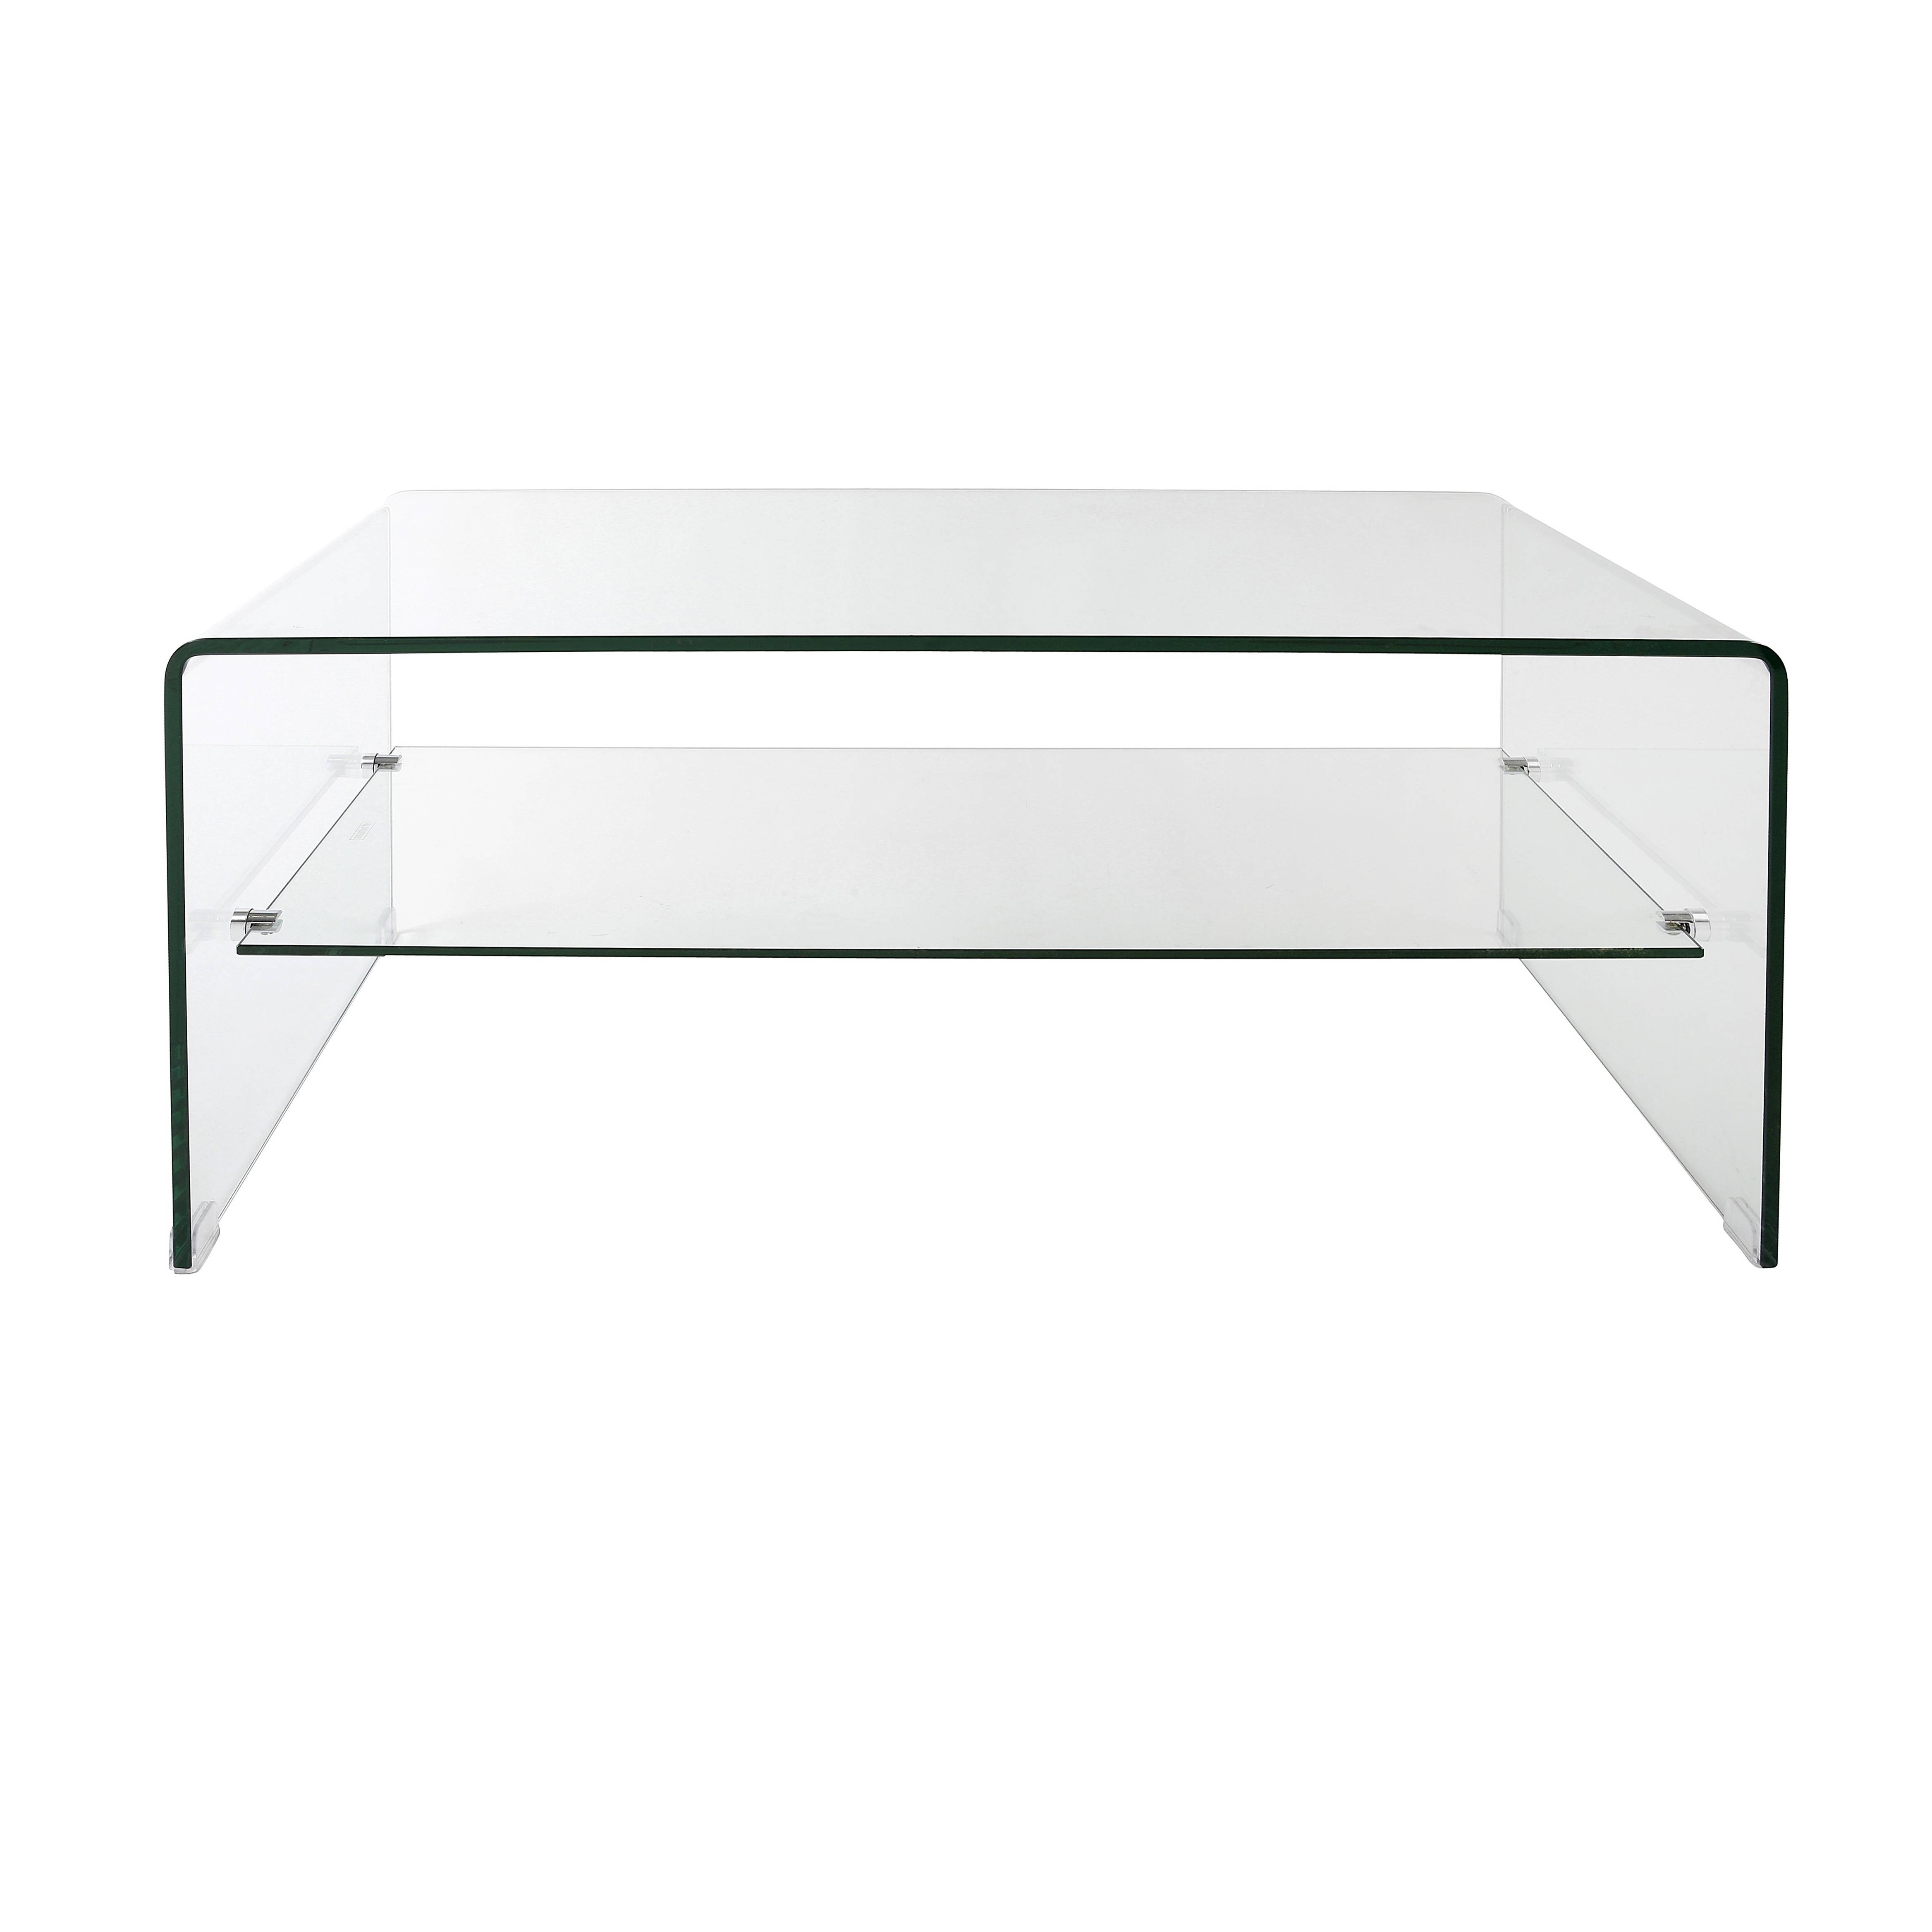 Top 30 of Curved Glass Coffee Tables